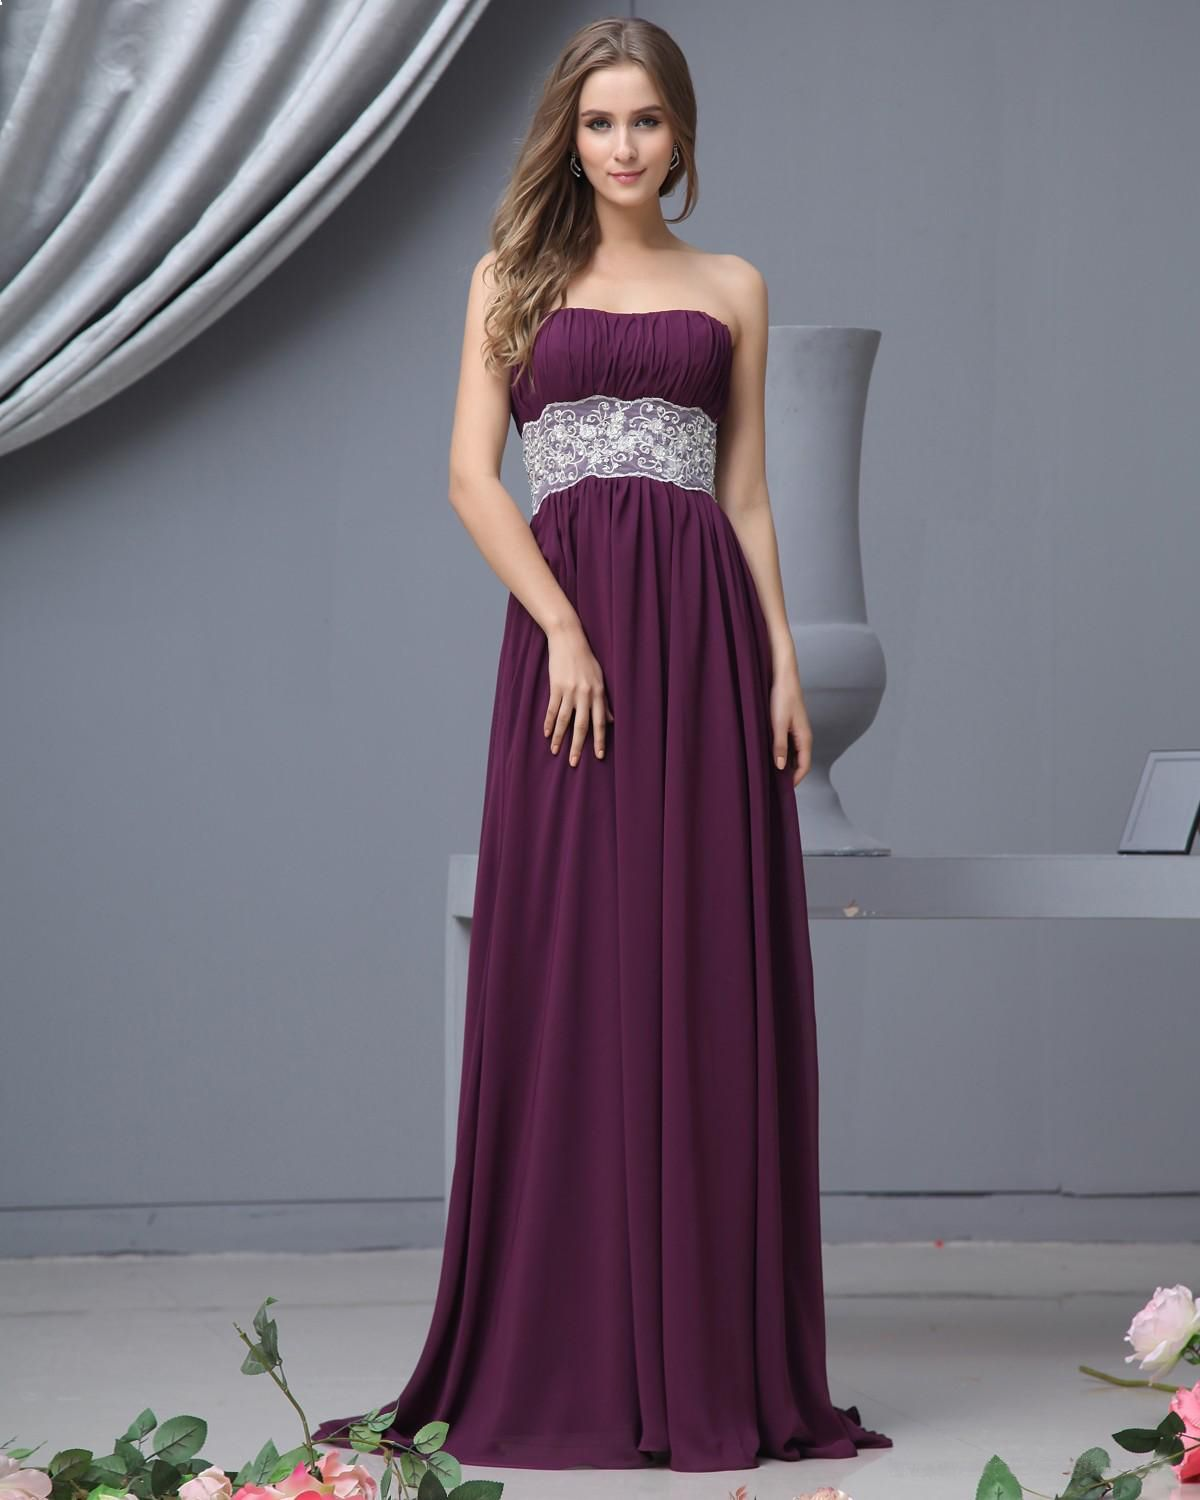 Sweetheart chiffon floor length bridesmaid dress gown wedding